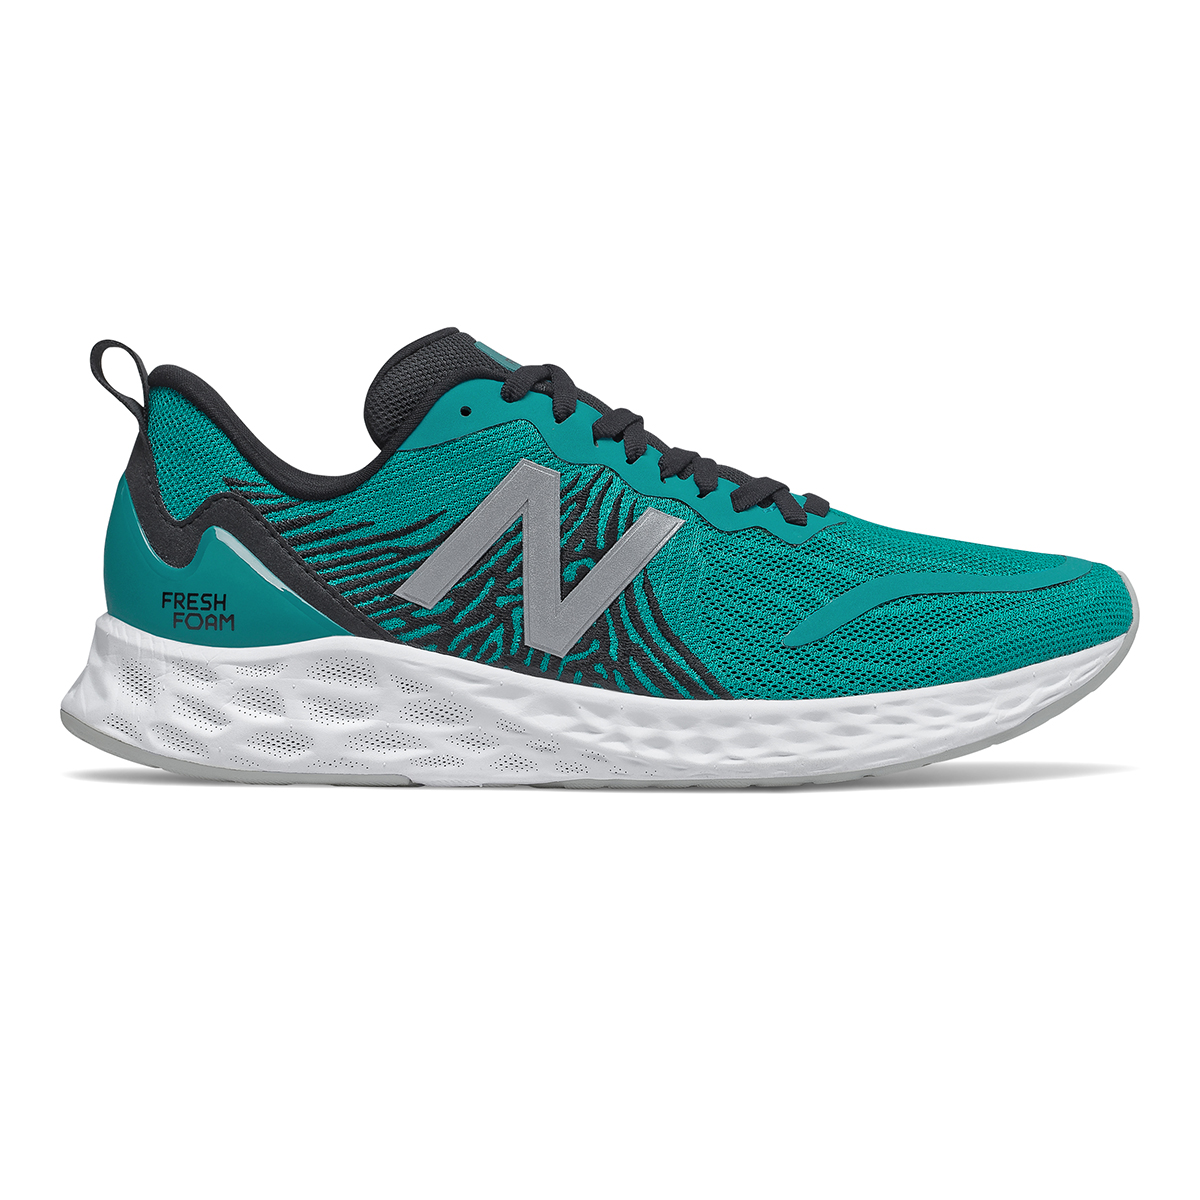 Men's New Balance Tempo Running Shoe - Color: Team Teal - Size: 7.5 - Width: Wide, Team Teal, large, image 1